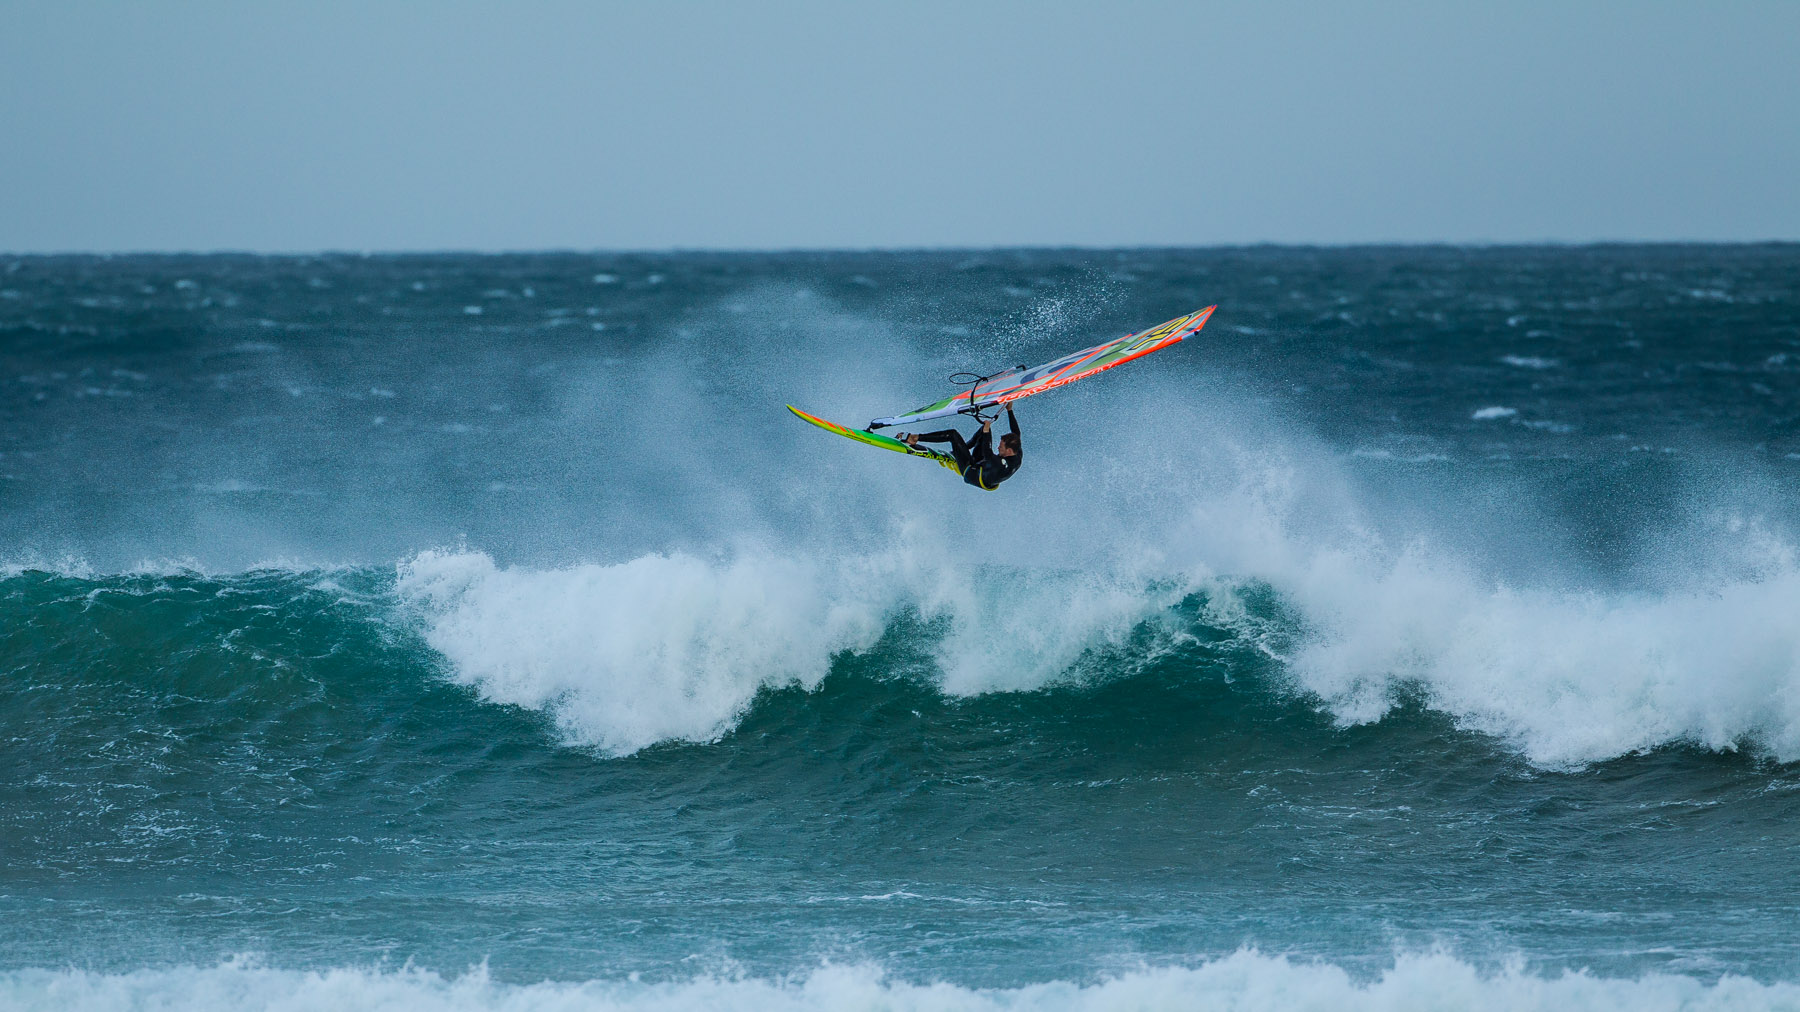 alastair mcleod windsurfing 13th beach poo point